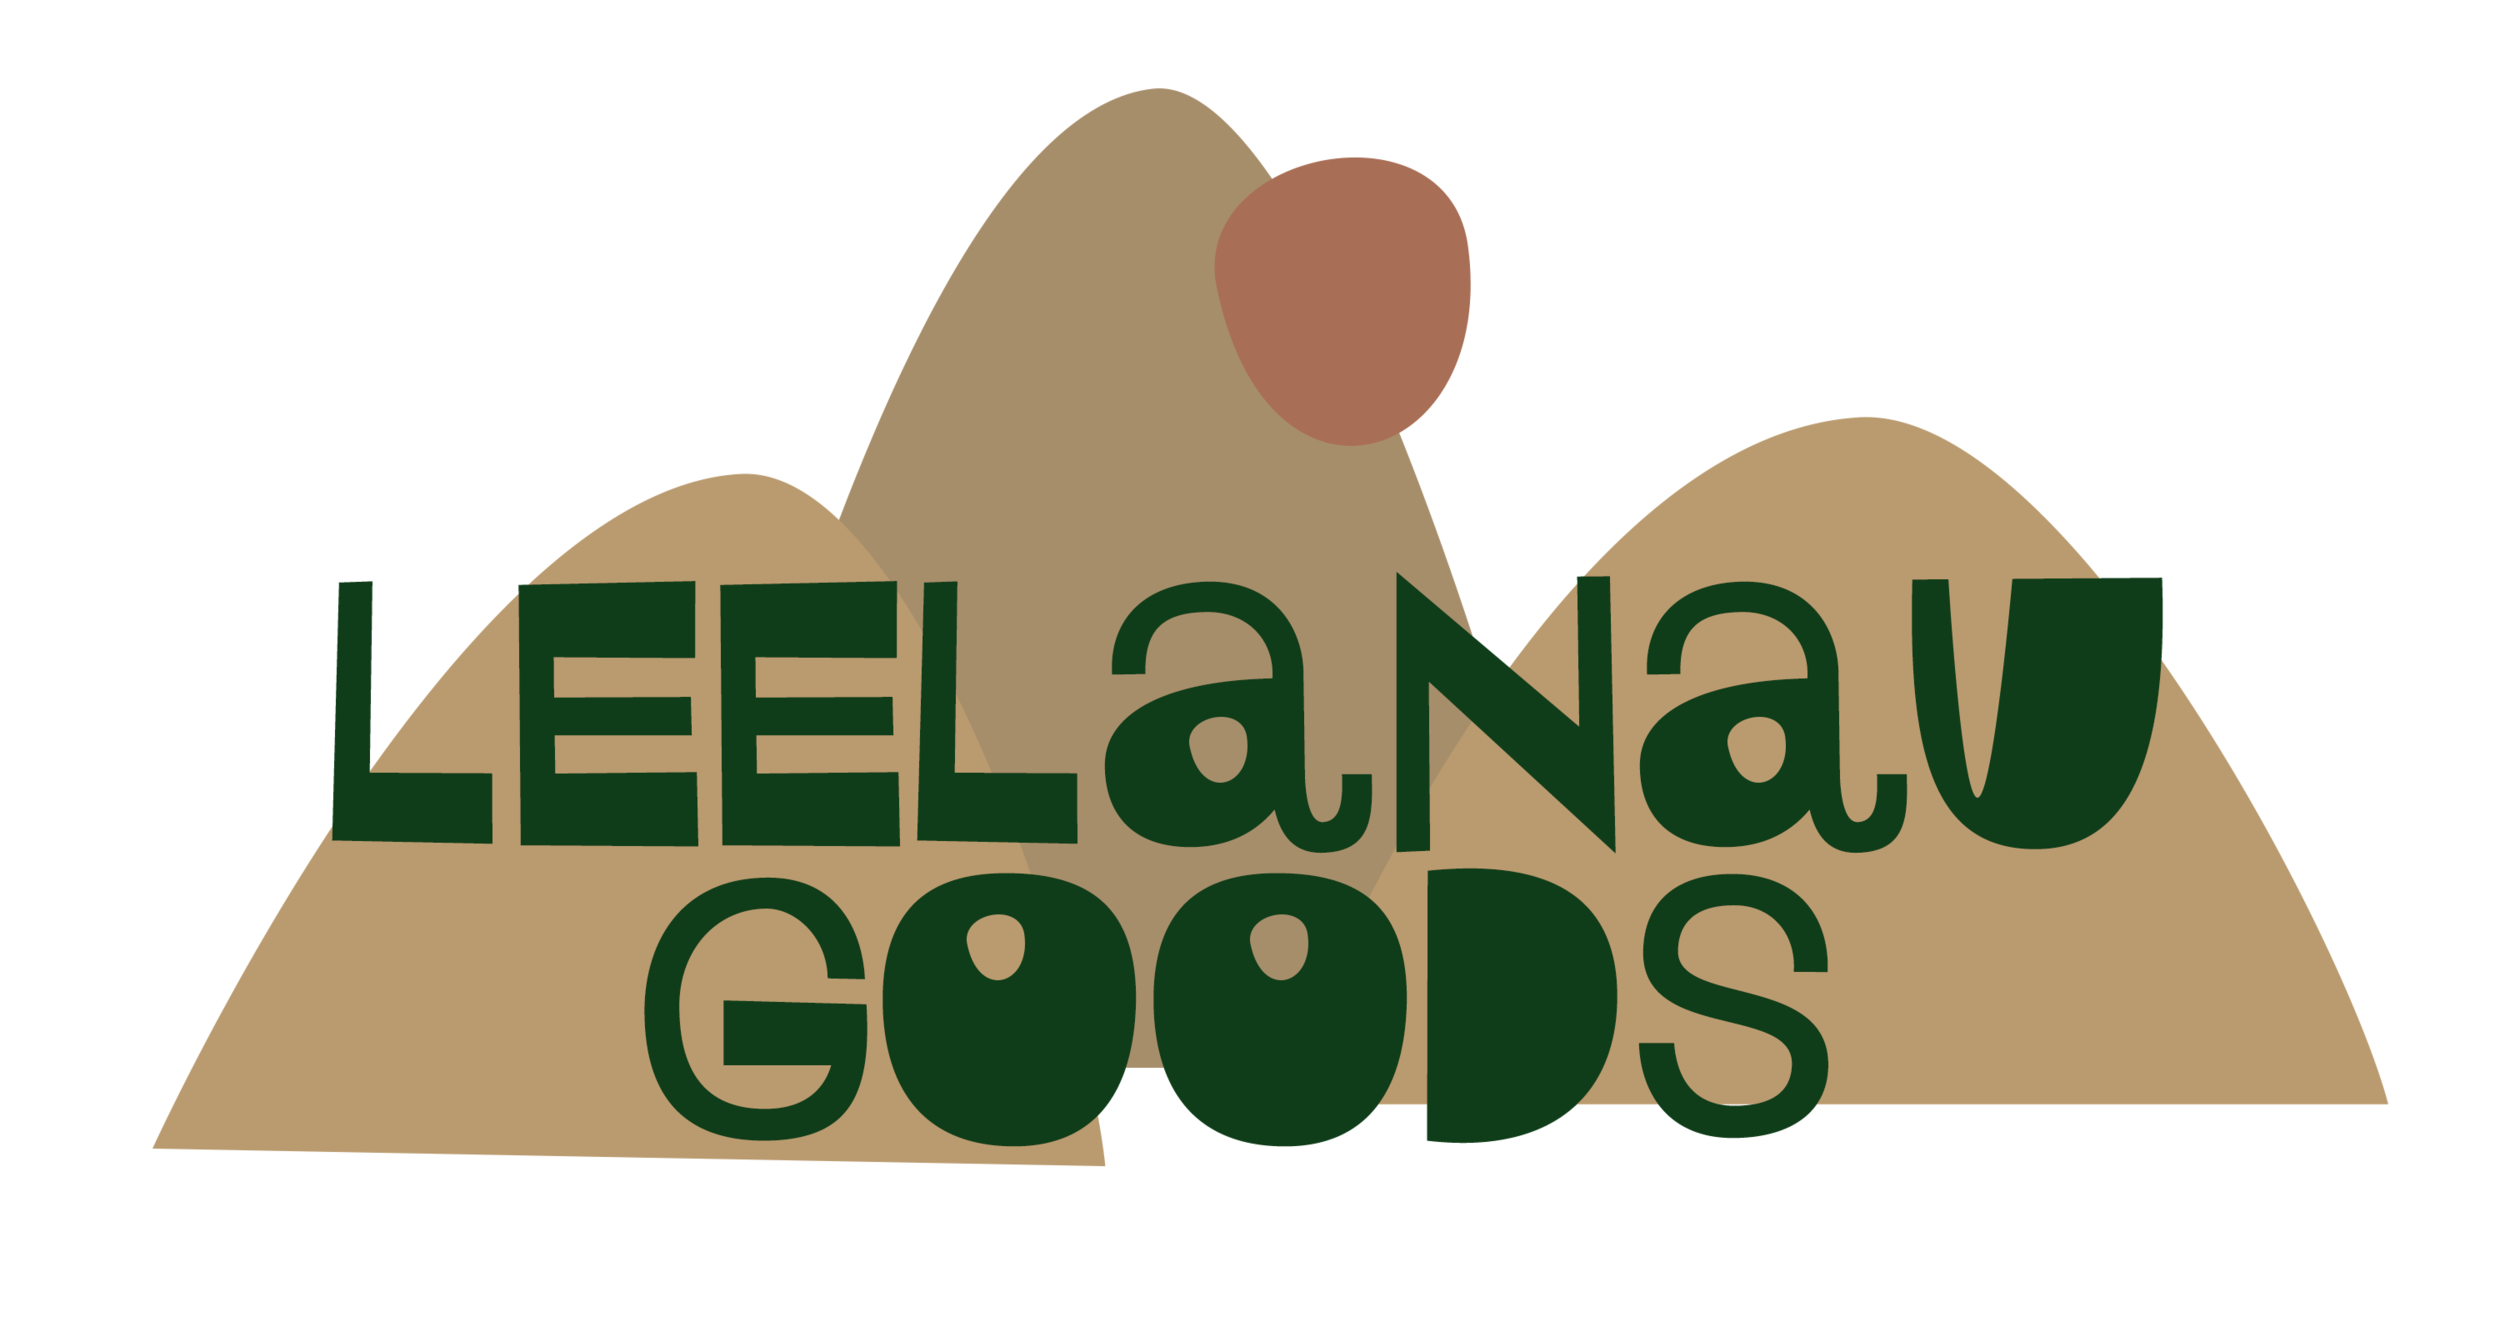 Leelanau-goods-card.png